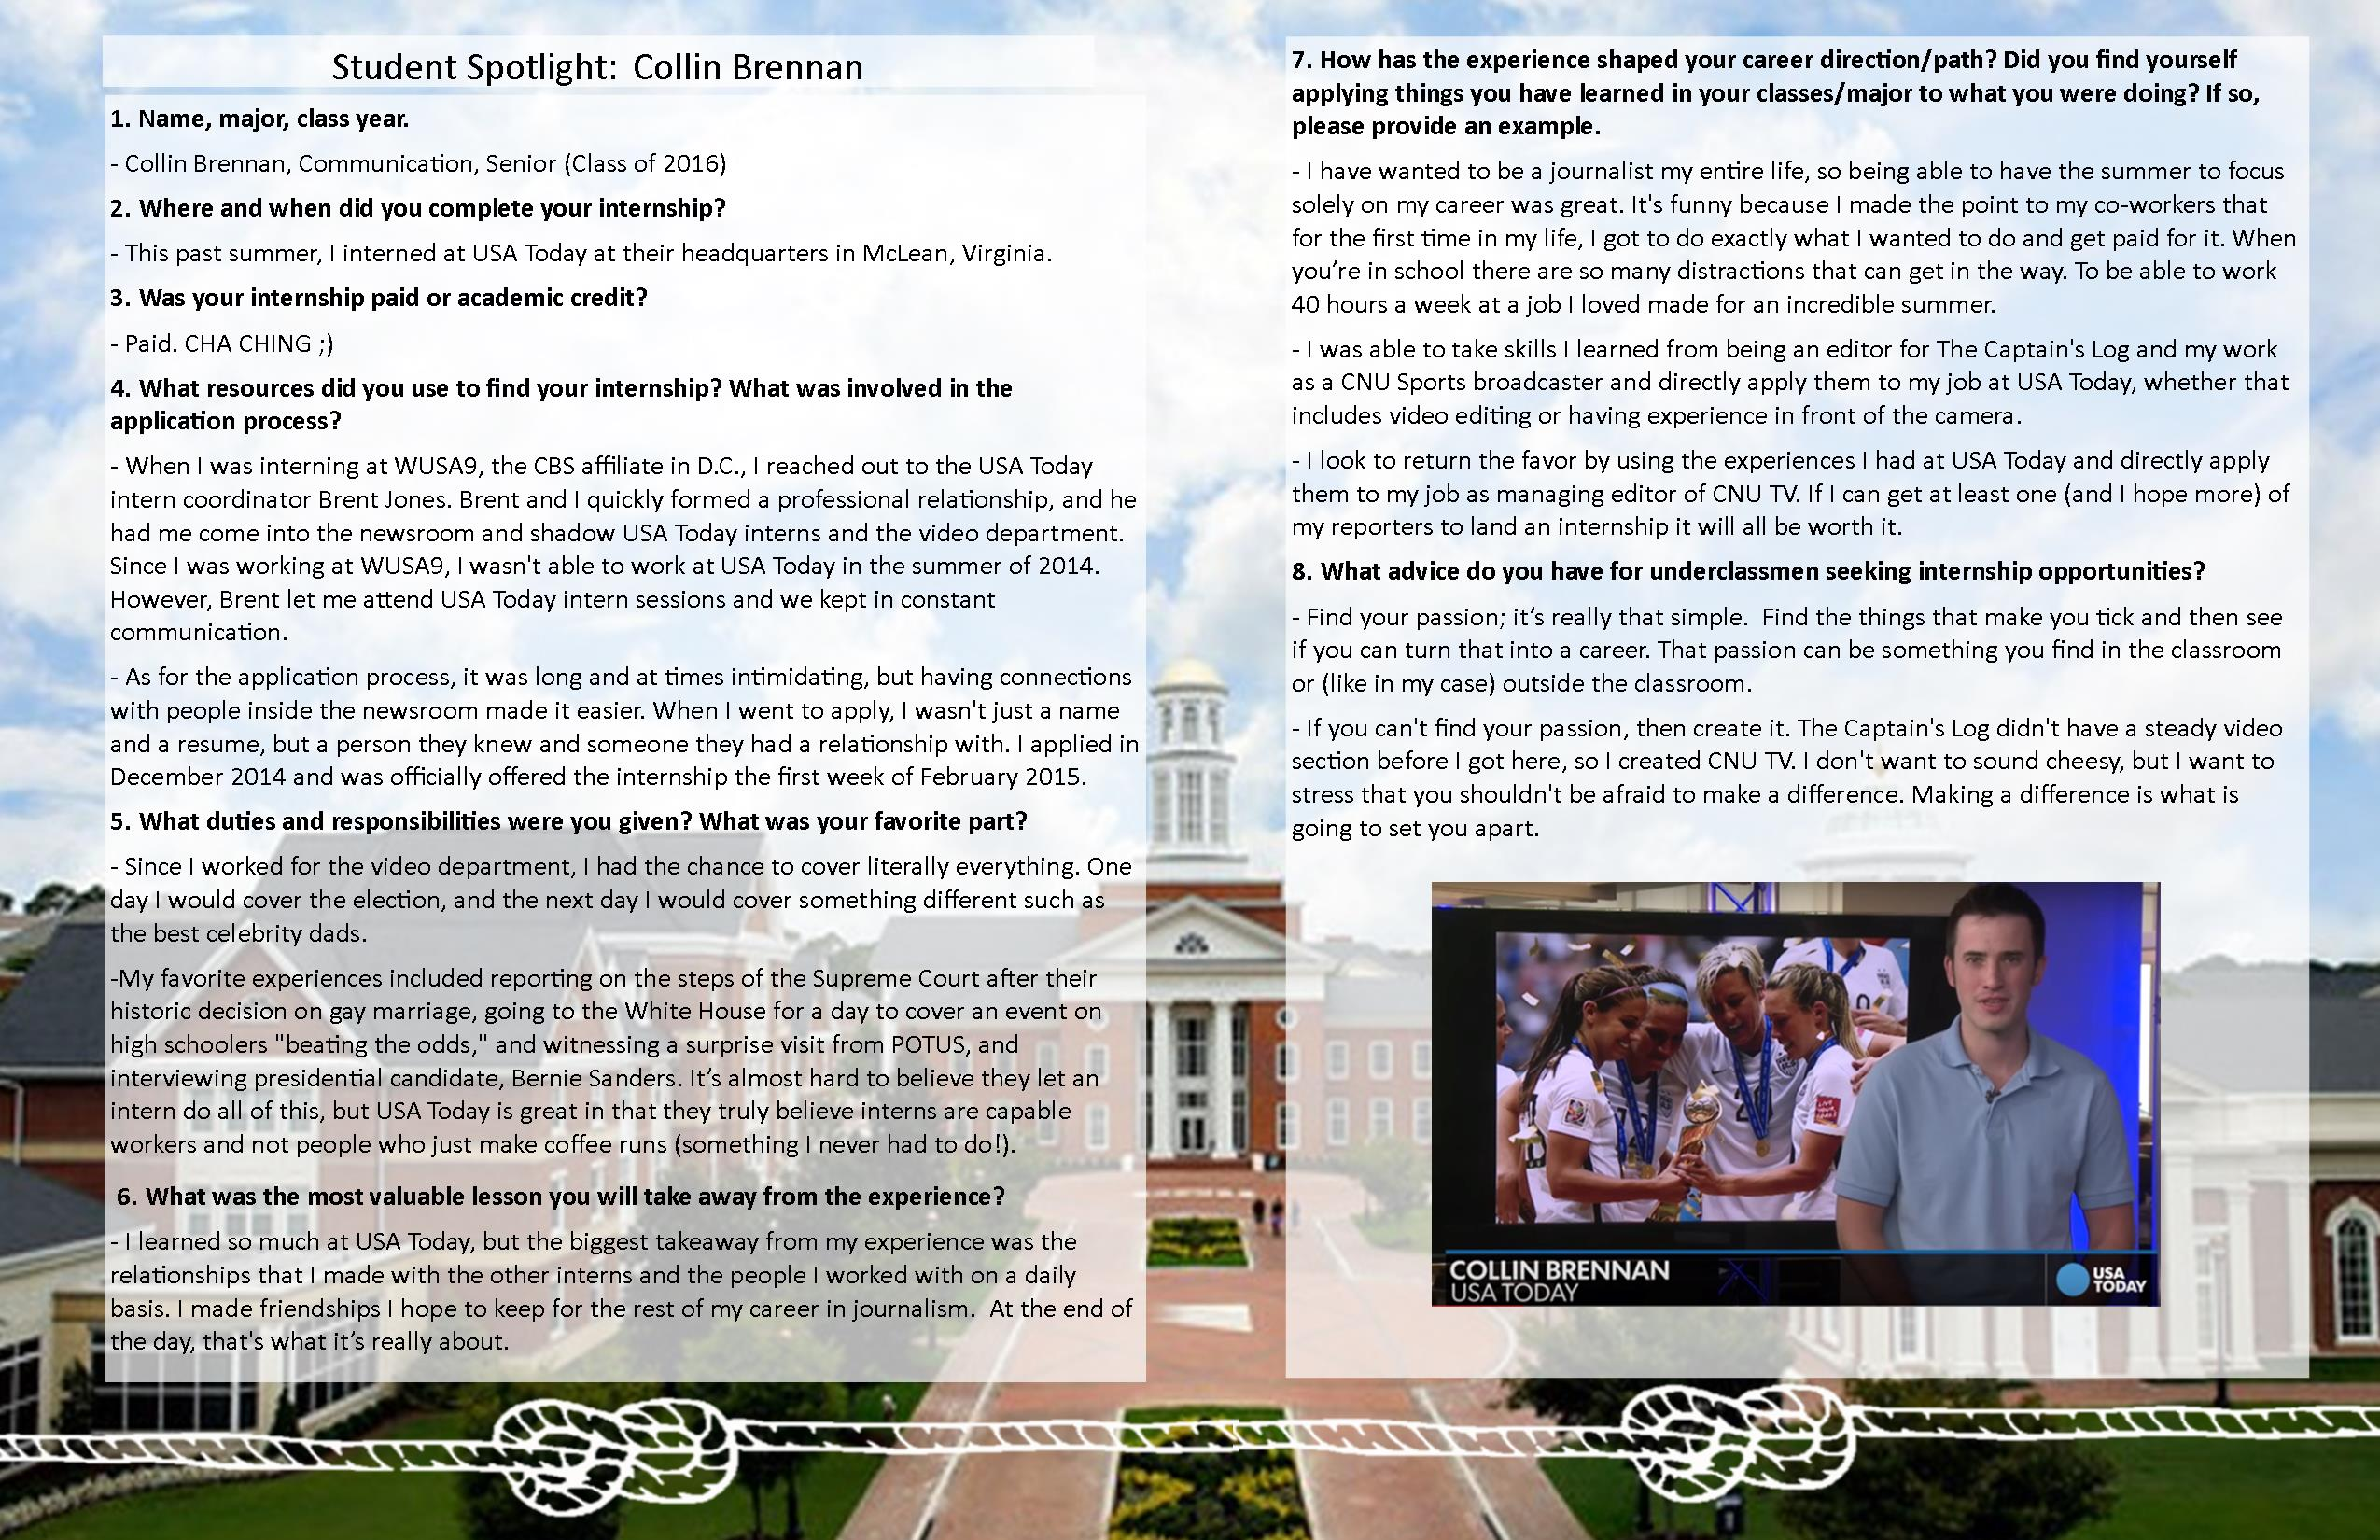 NEW-Student Spotlight Template - Collin Brennan